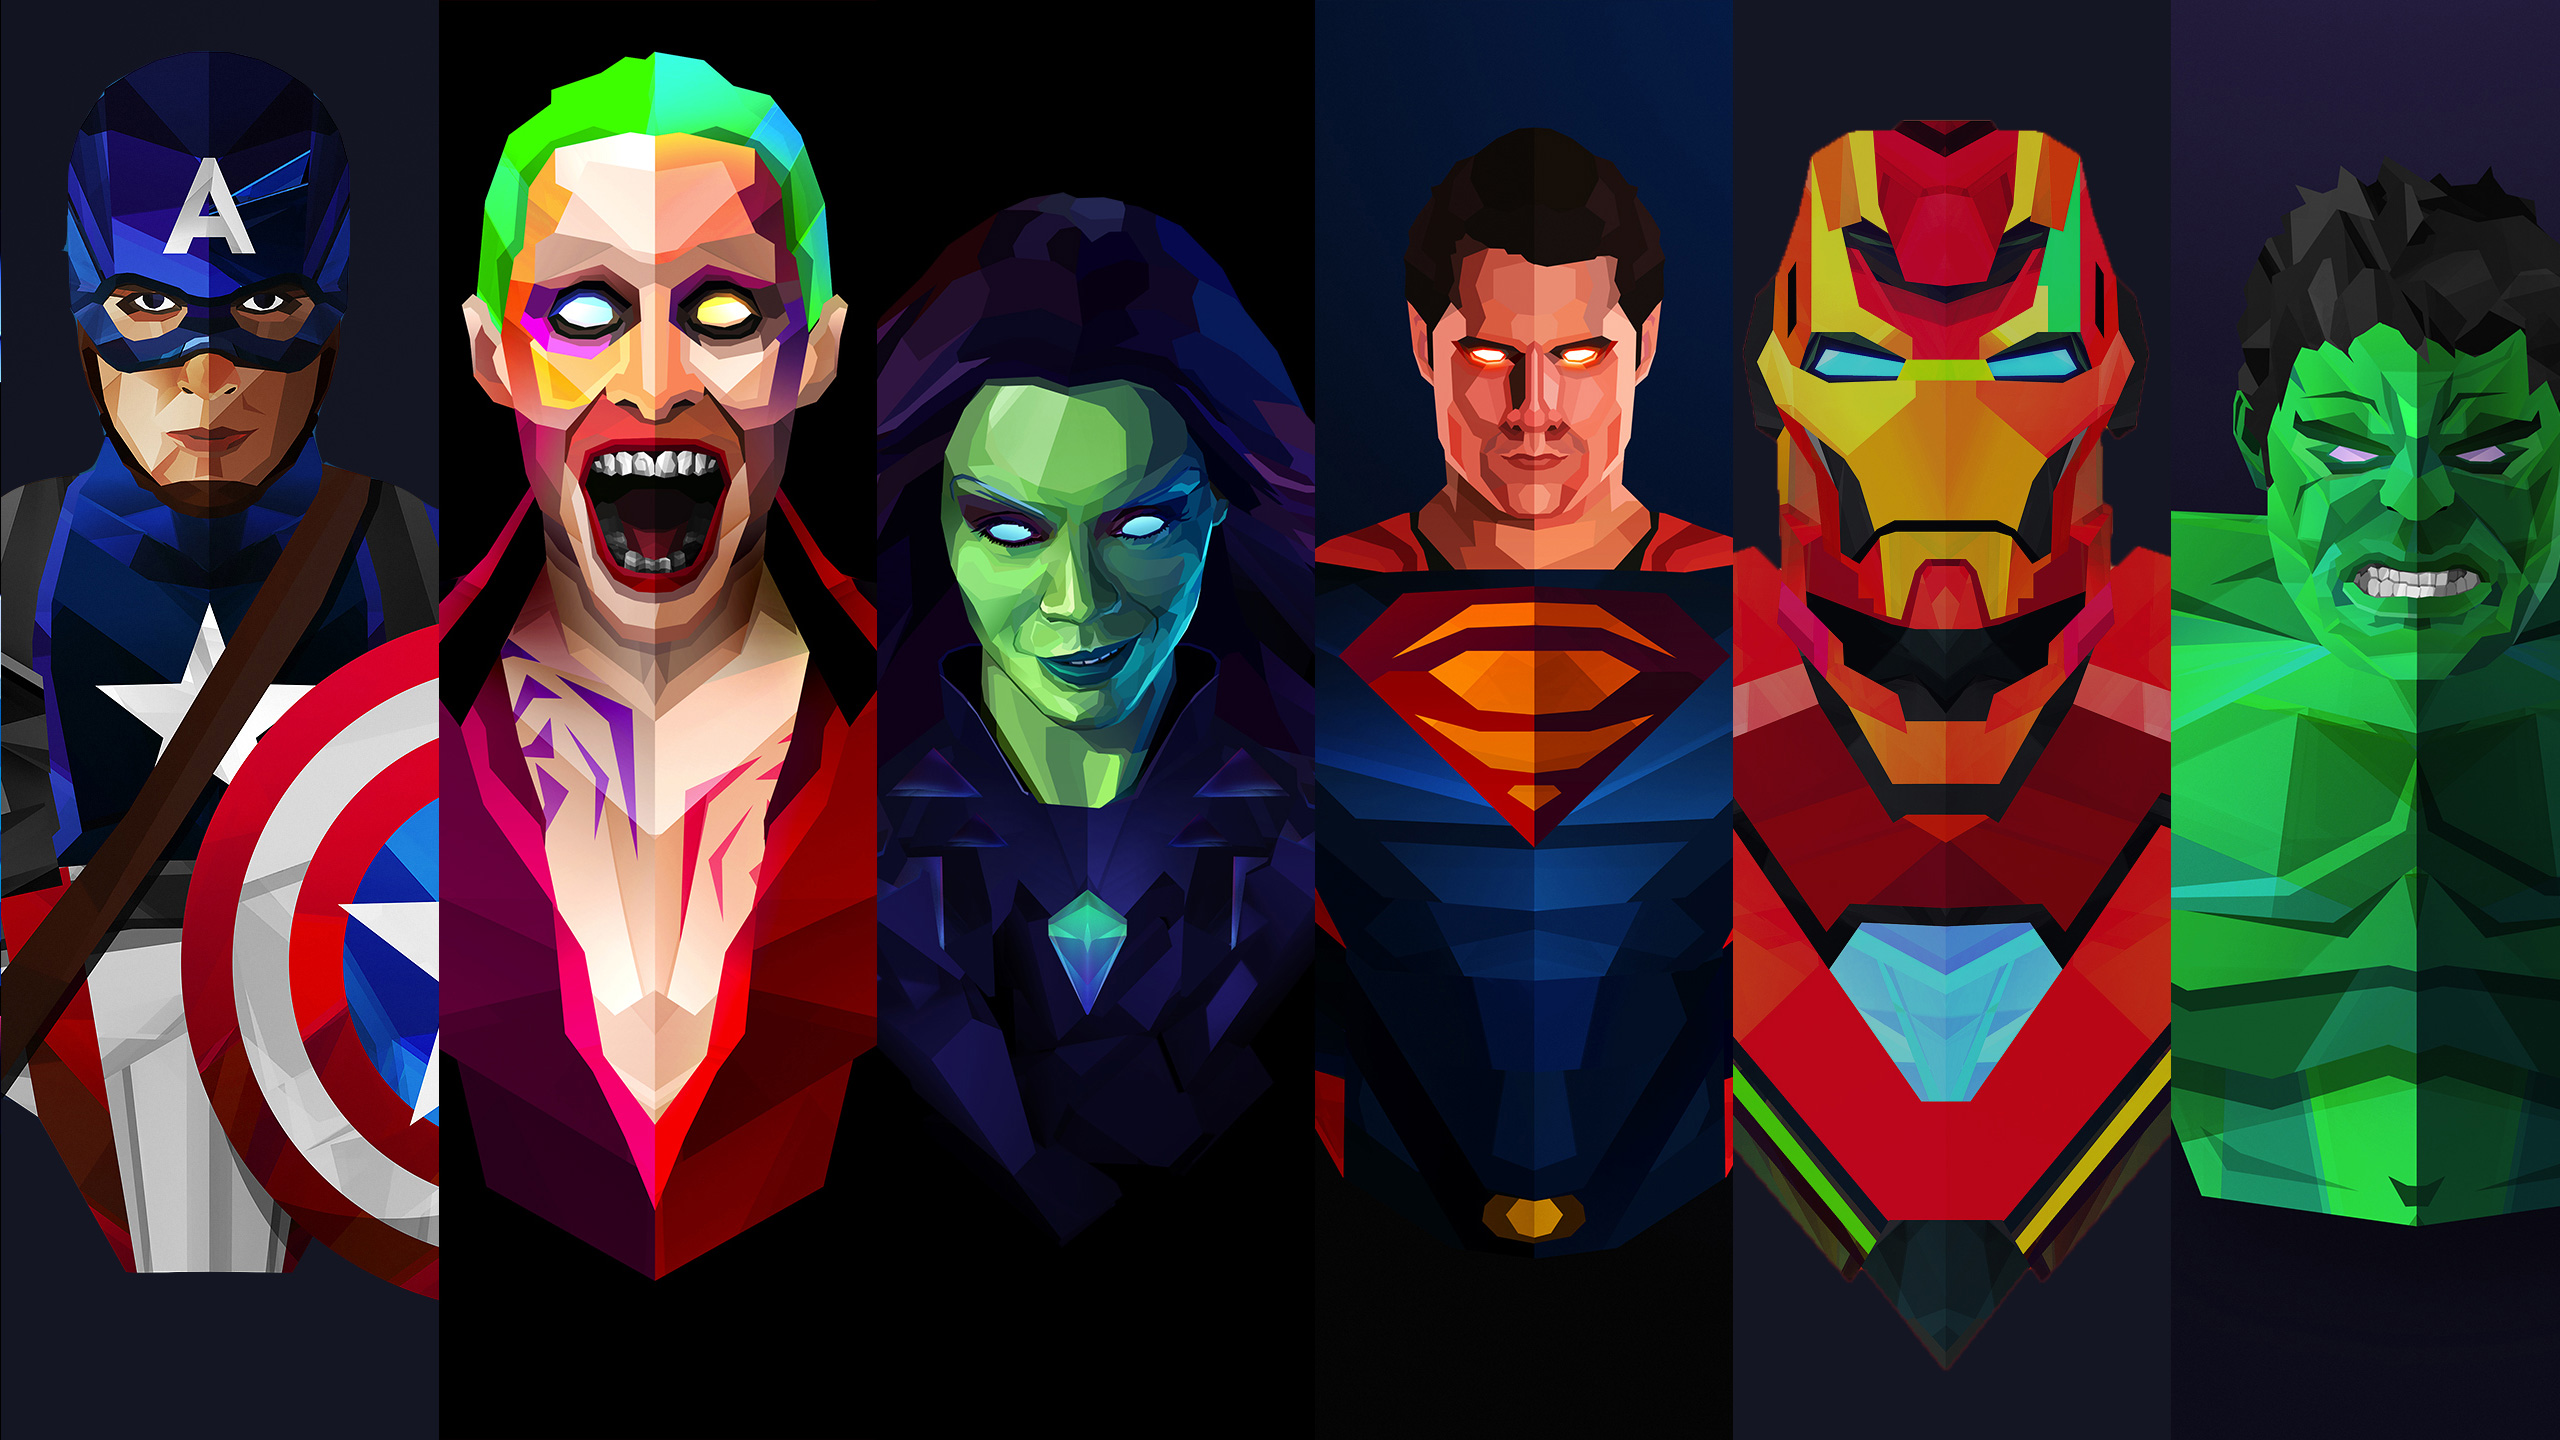 Marvel and dc artwork hd superheroes 4k wallpapers images backgrounds photos and pictures - Dc characters wallpaper hd ...